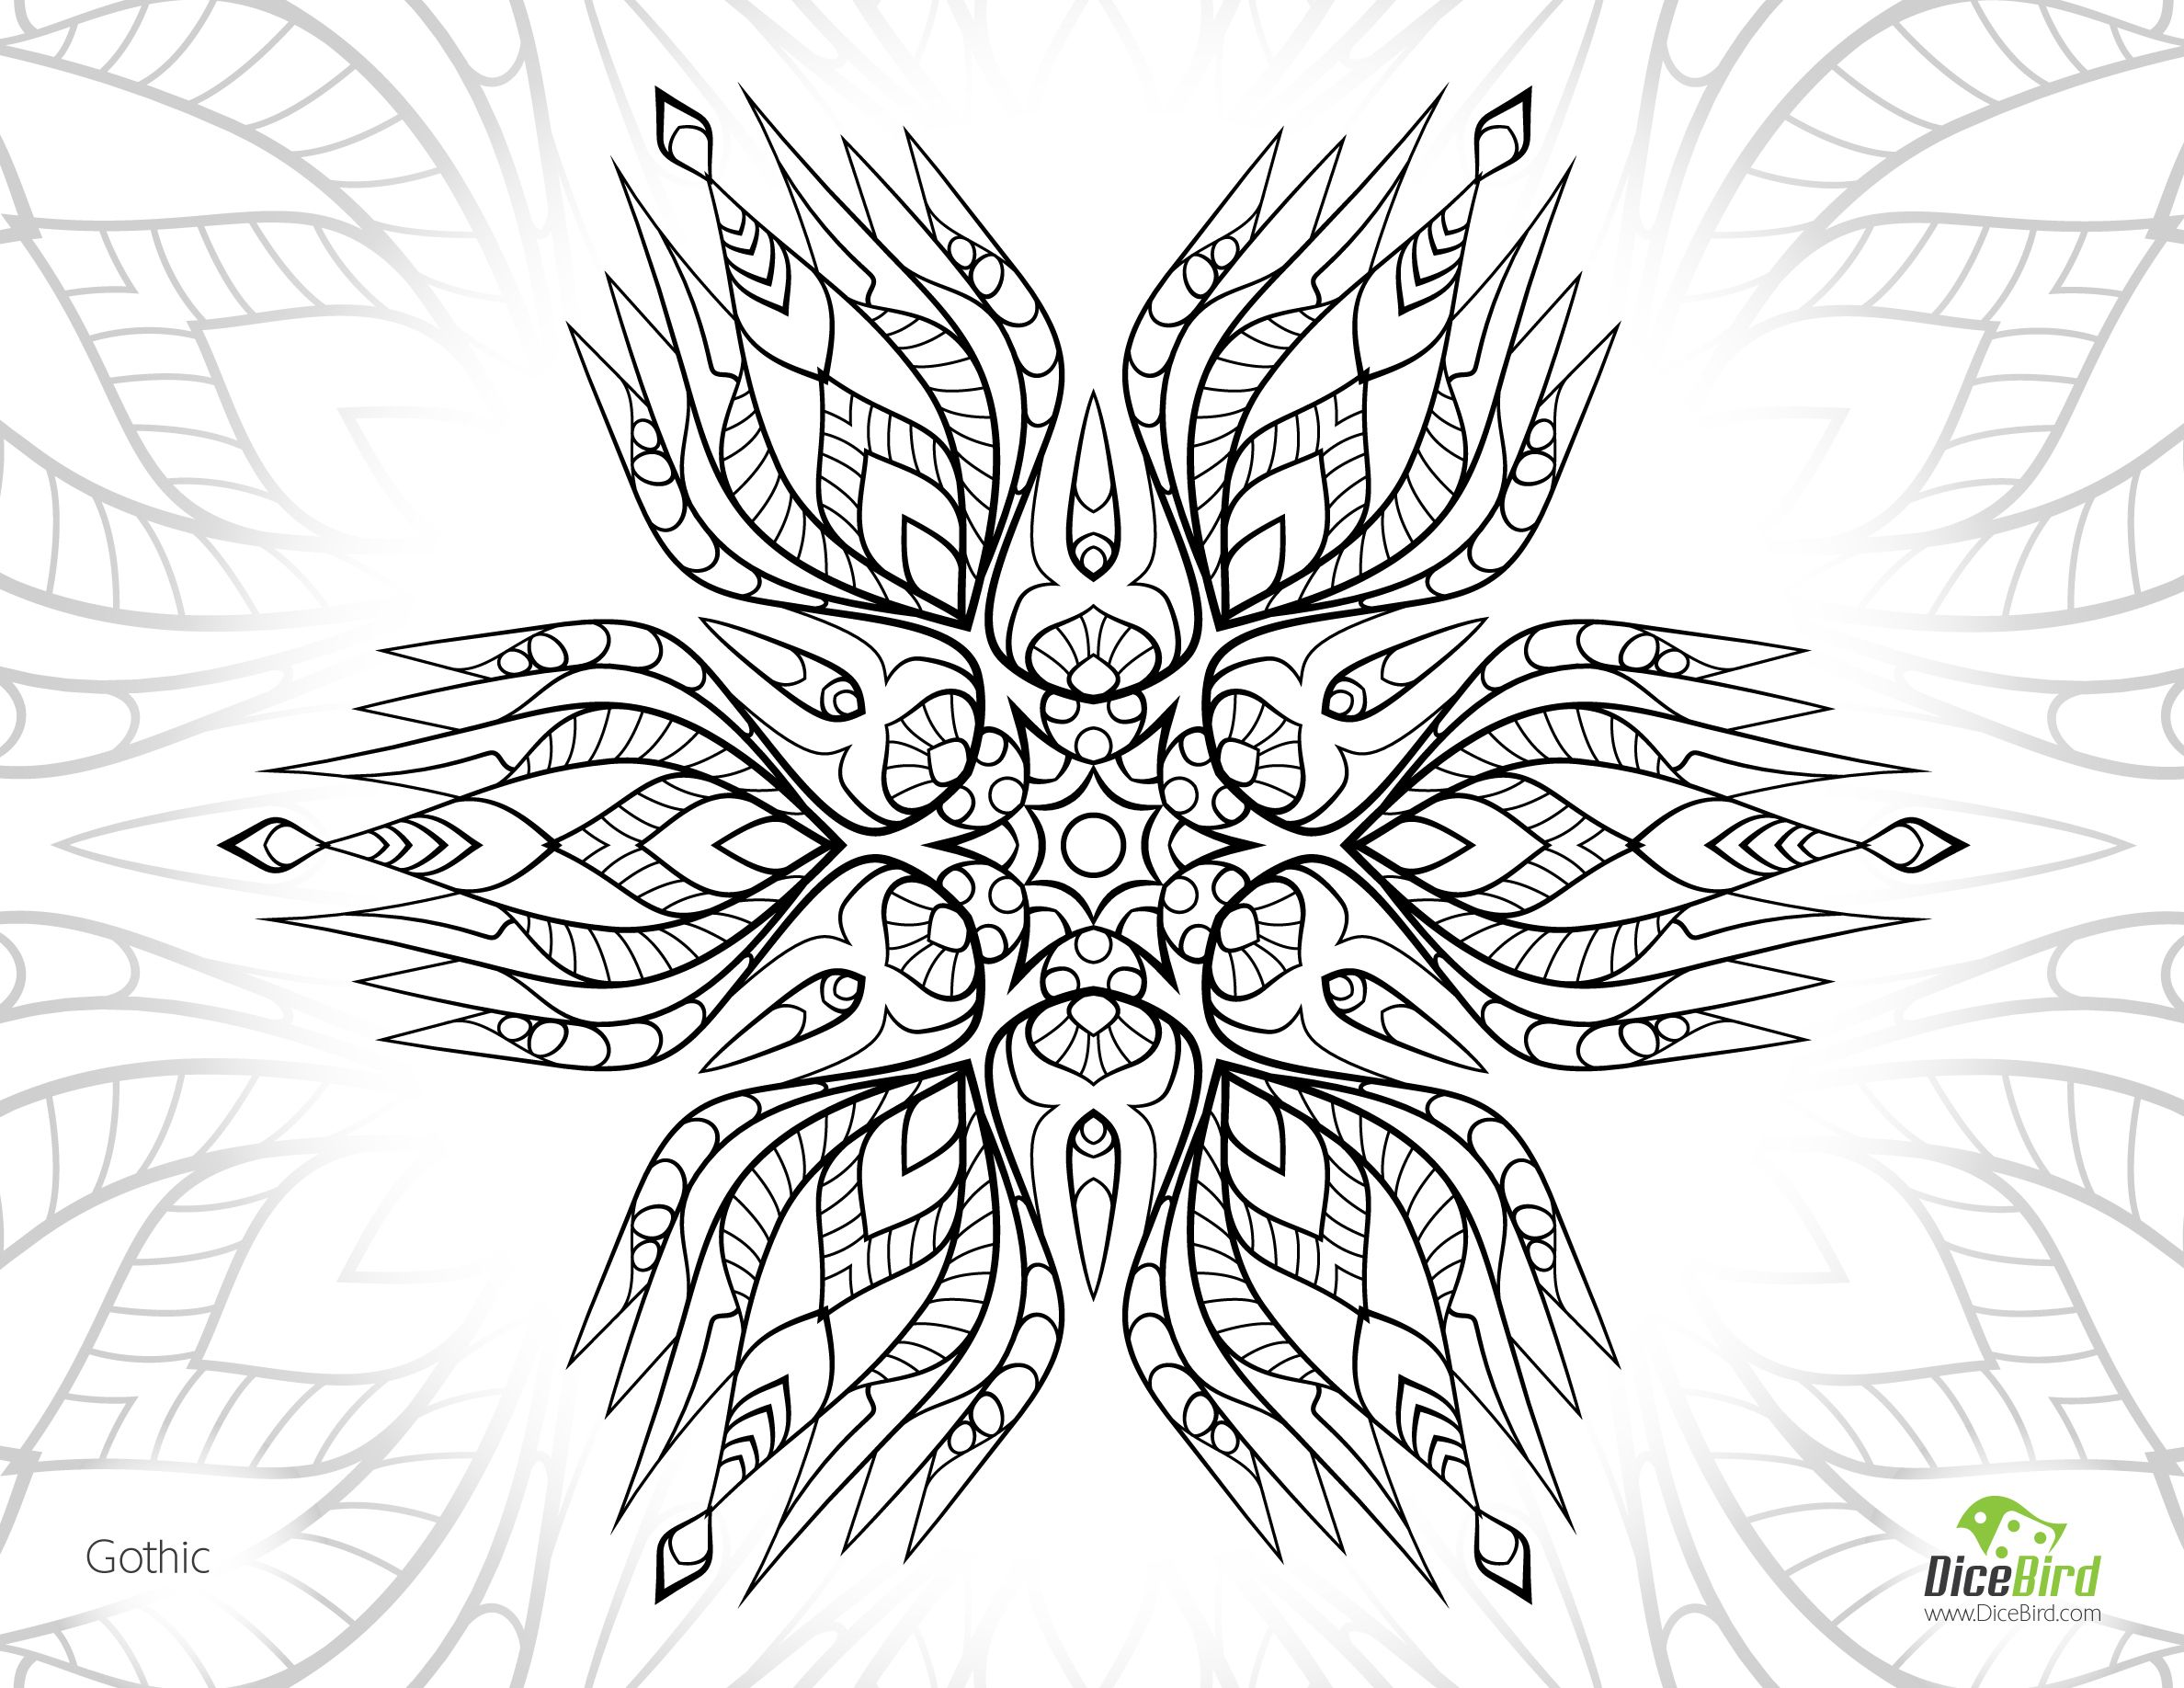 Gothic flower, http://dicebird.com/gothic-flower-free-adult-coloring-pictures/